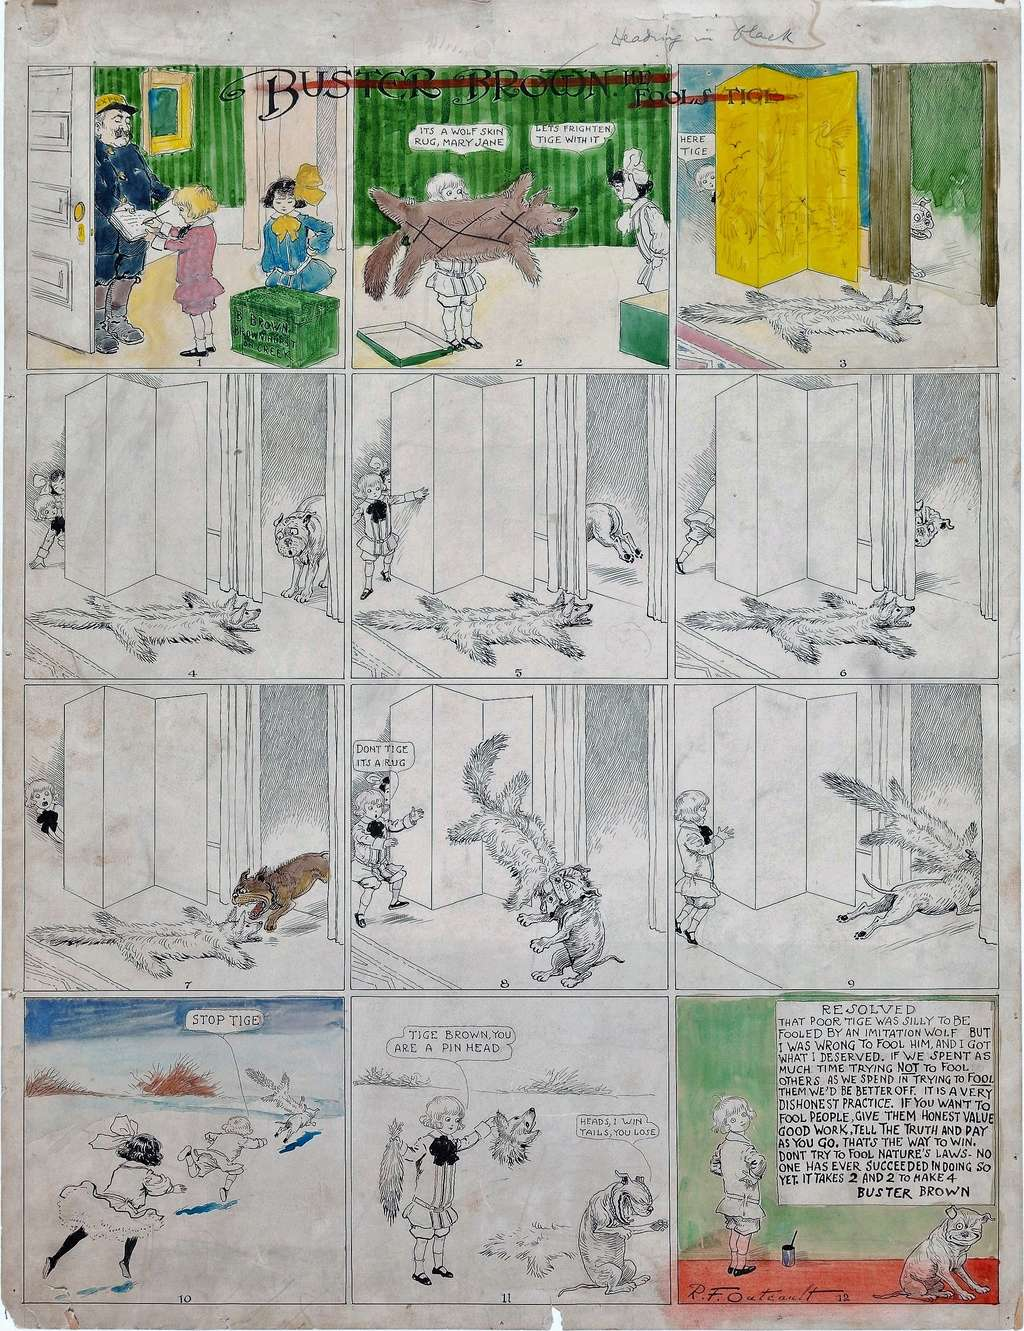 Les facéties de Buster Brown - Page 2 Buster10